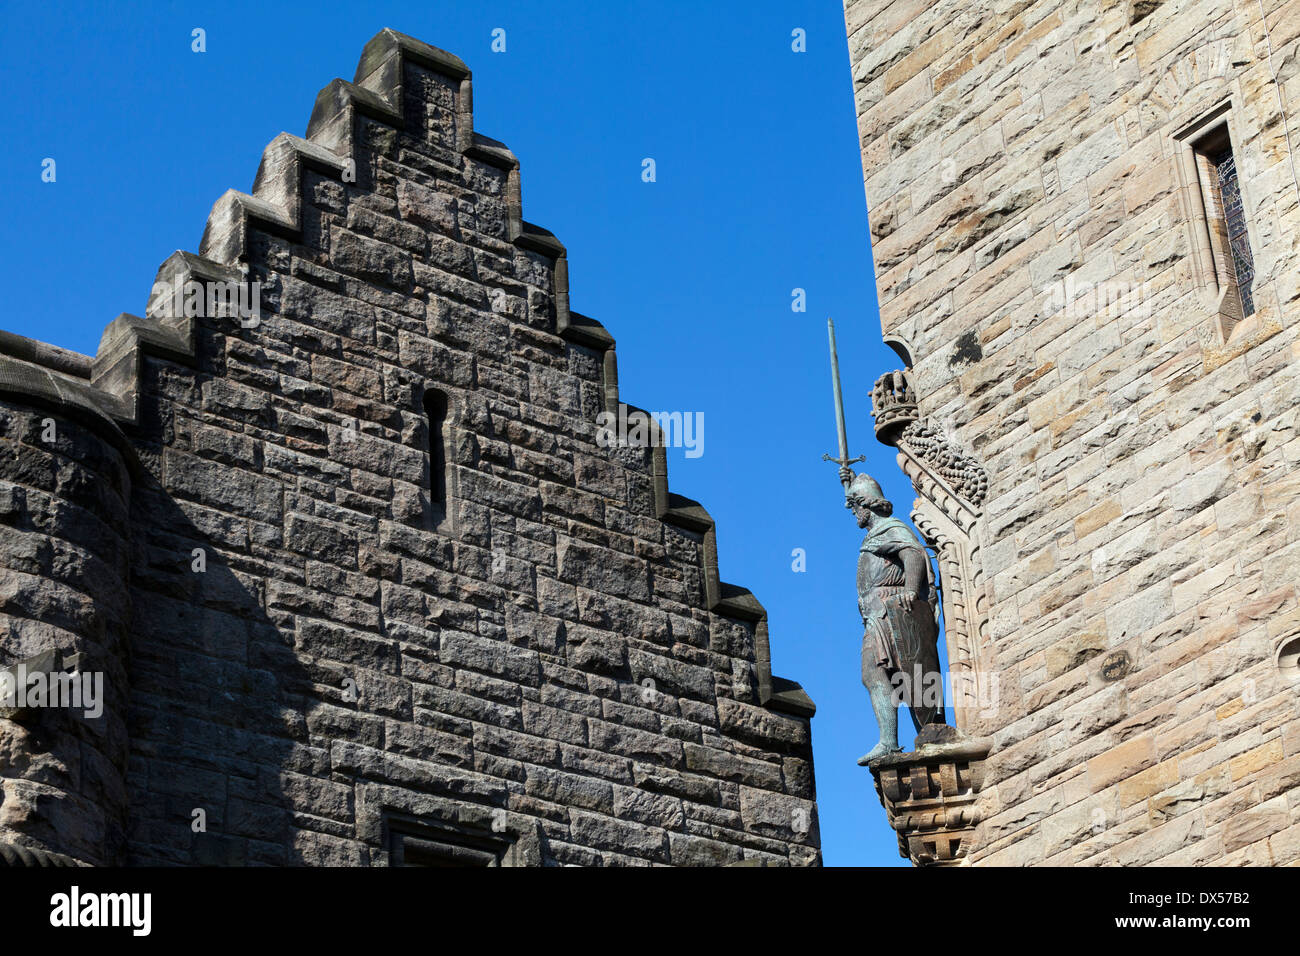 Statue of William Wallace on the National Wallace Monument on Abbey Craig, near Stirling, Scotland - Stock Image